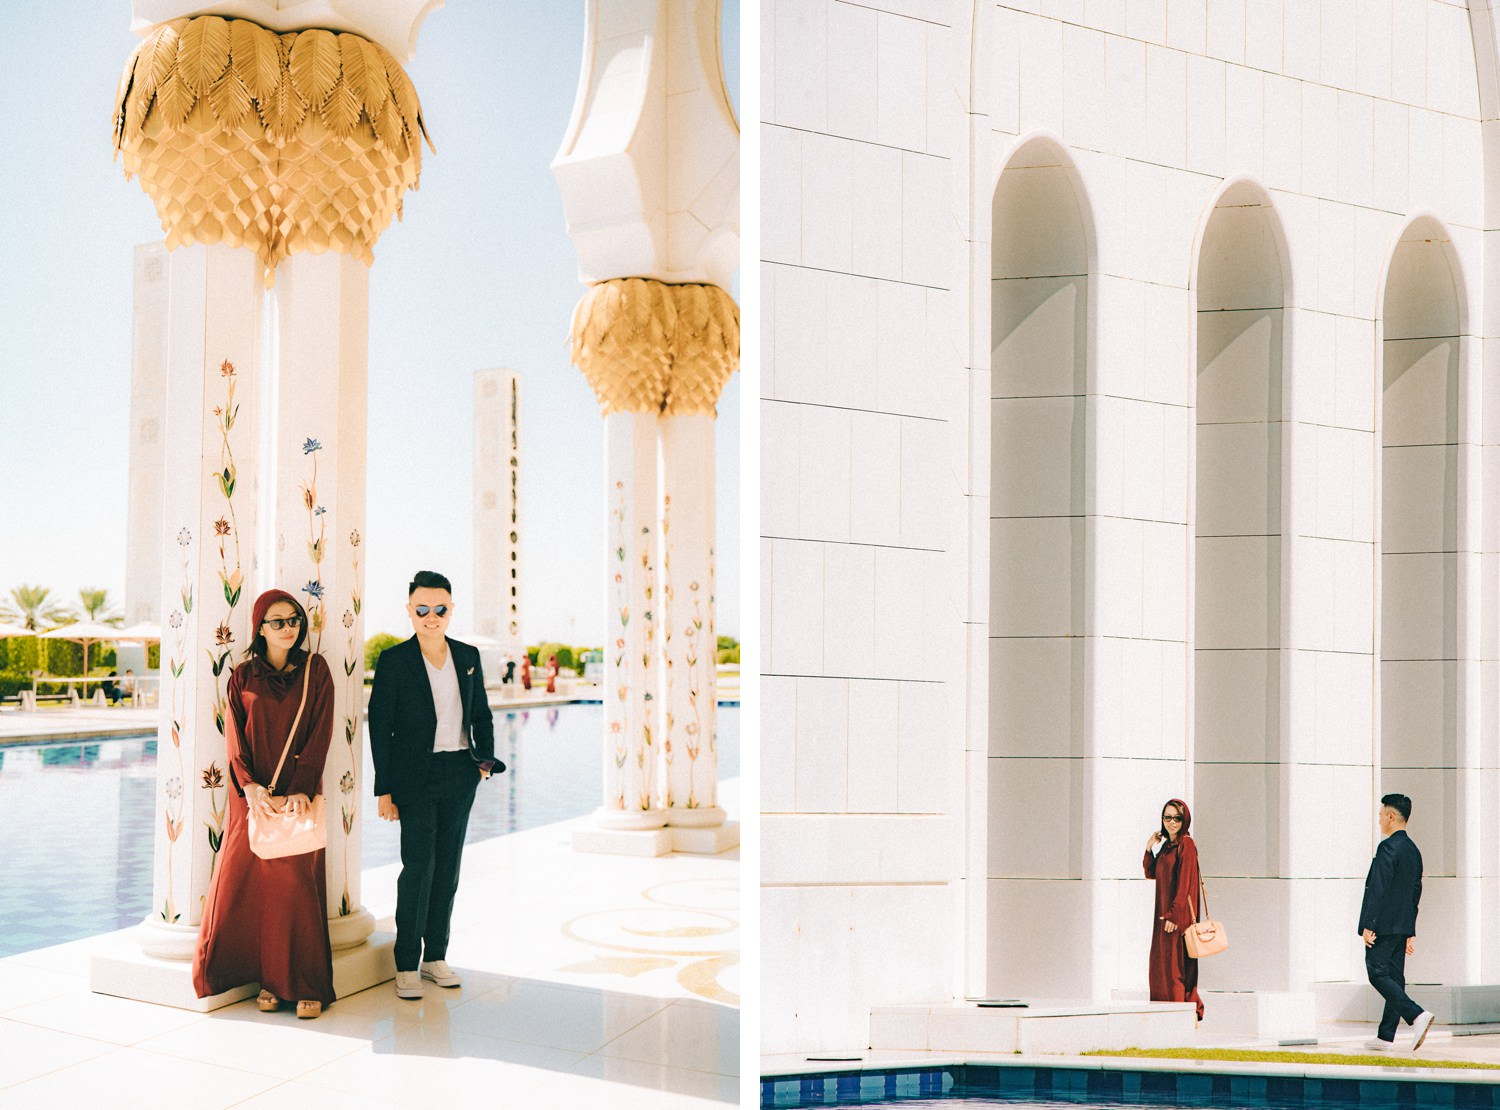 Oak St Studios - Migi and Joan - Abu Dhabi Dubai United Arab Emirates Engagement Photographer